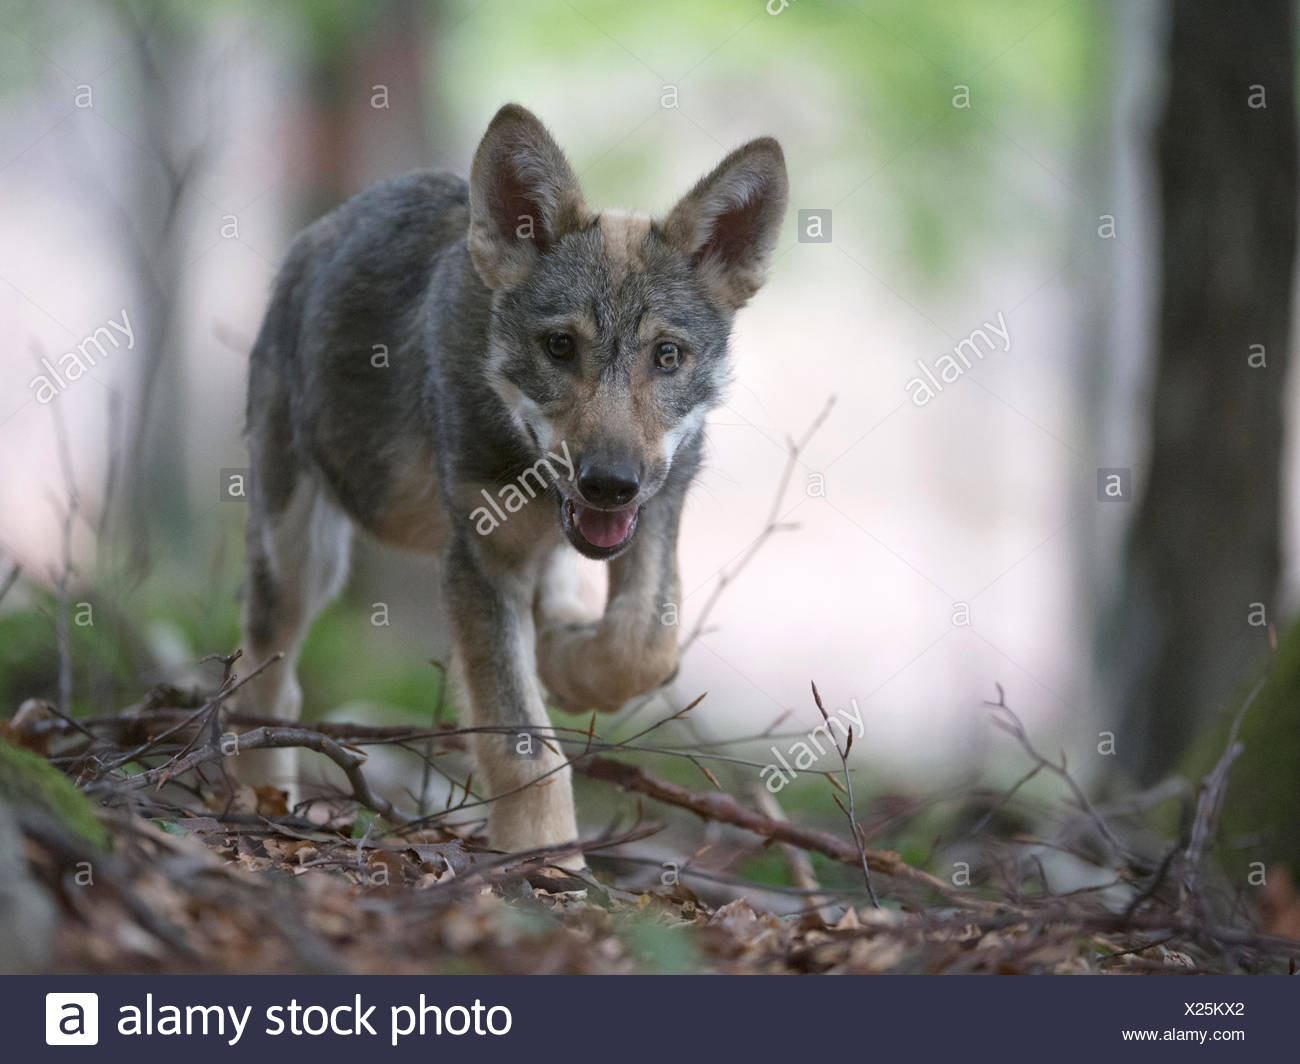 Wolf (Canis lupus), pup, captive, Germany - Stock Image